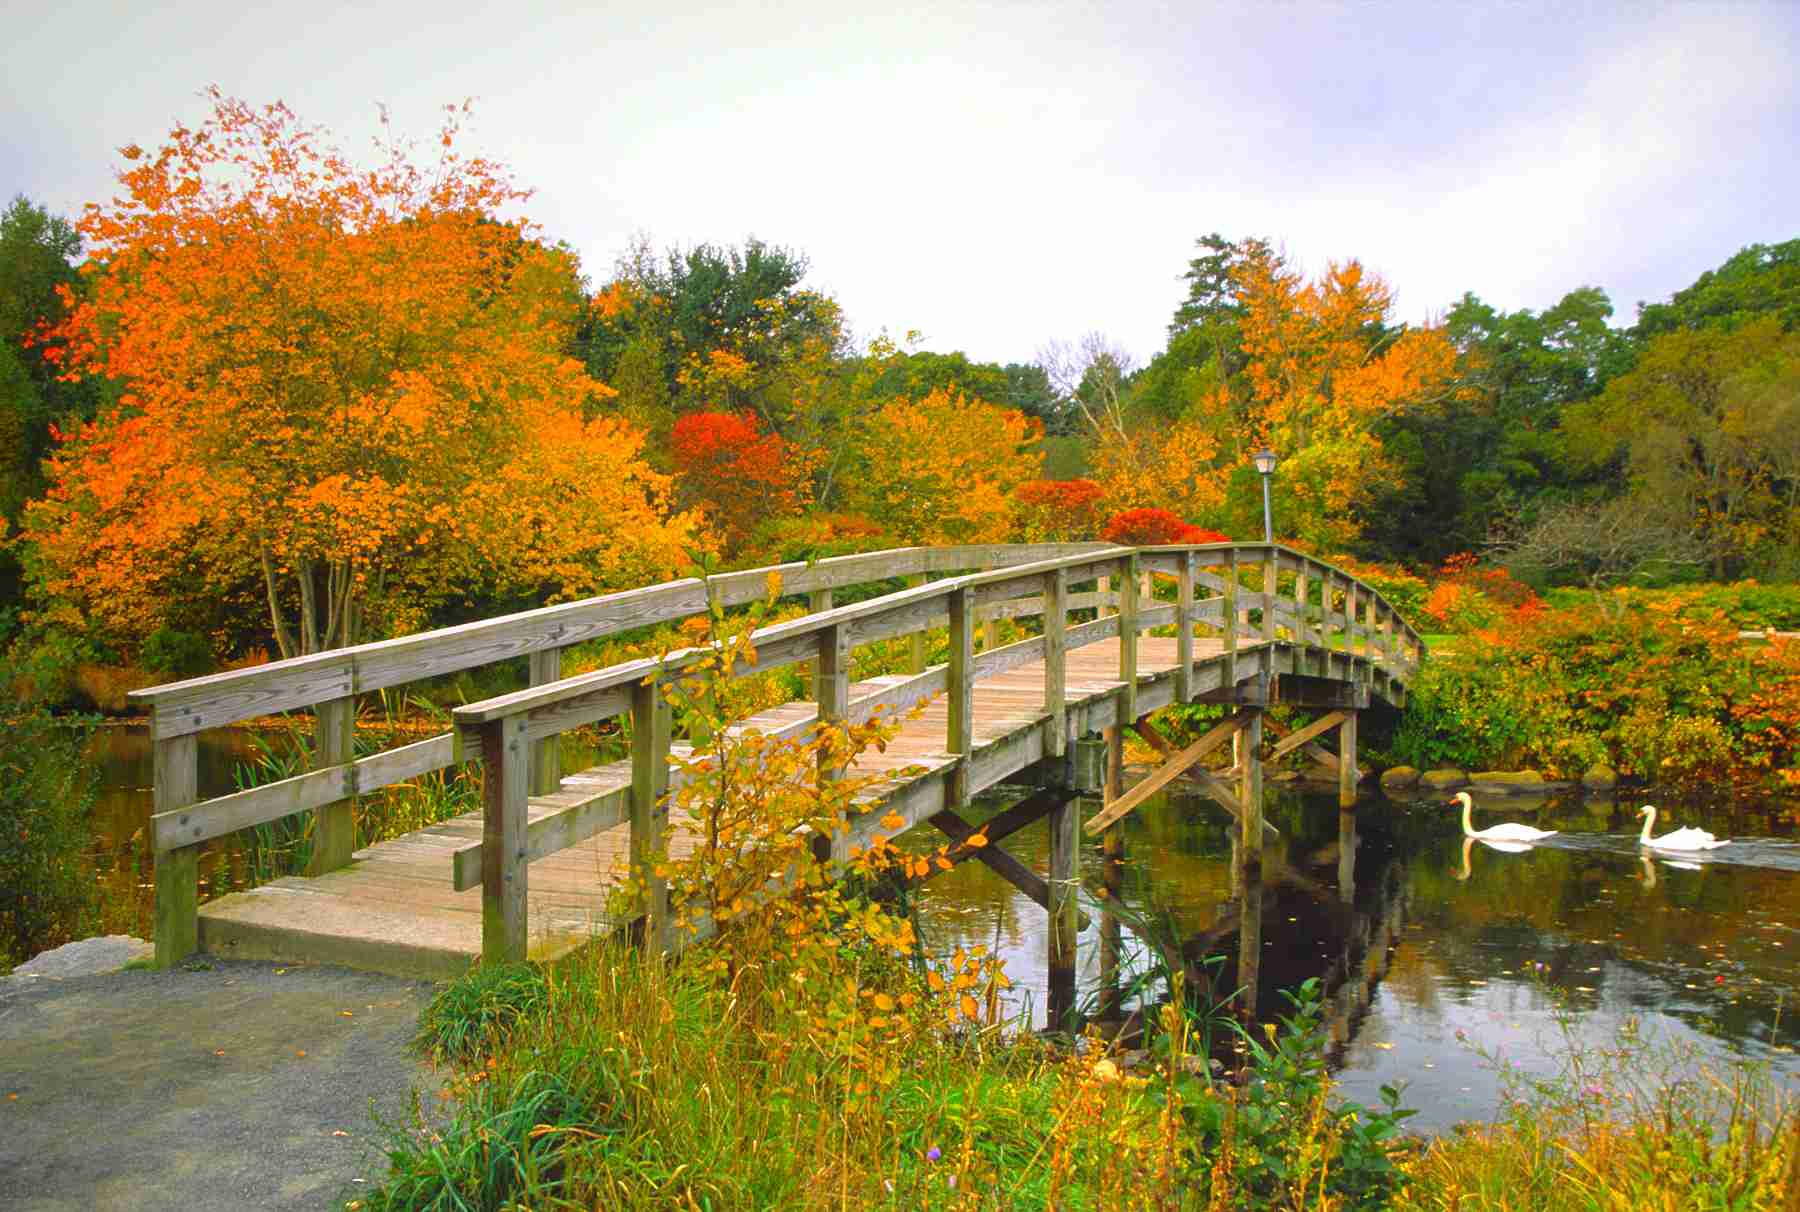 Scenic Autumn bridge with swans on small river in Plymouth, Massachusetts